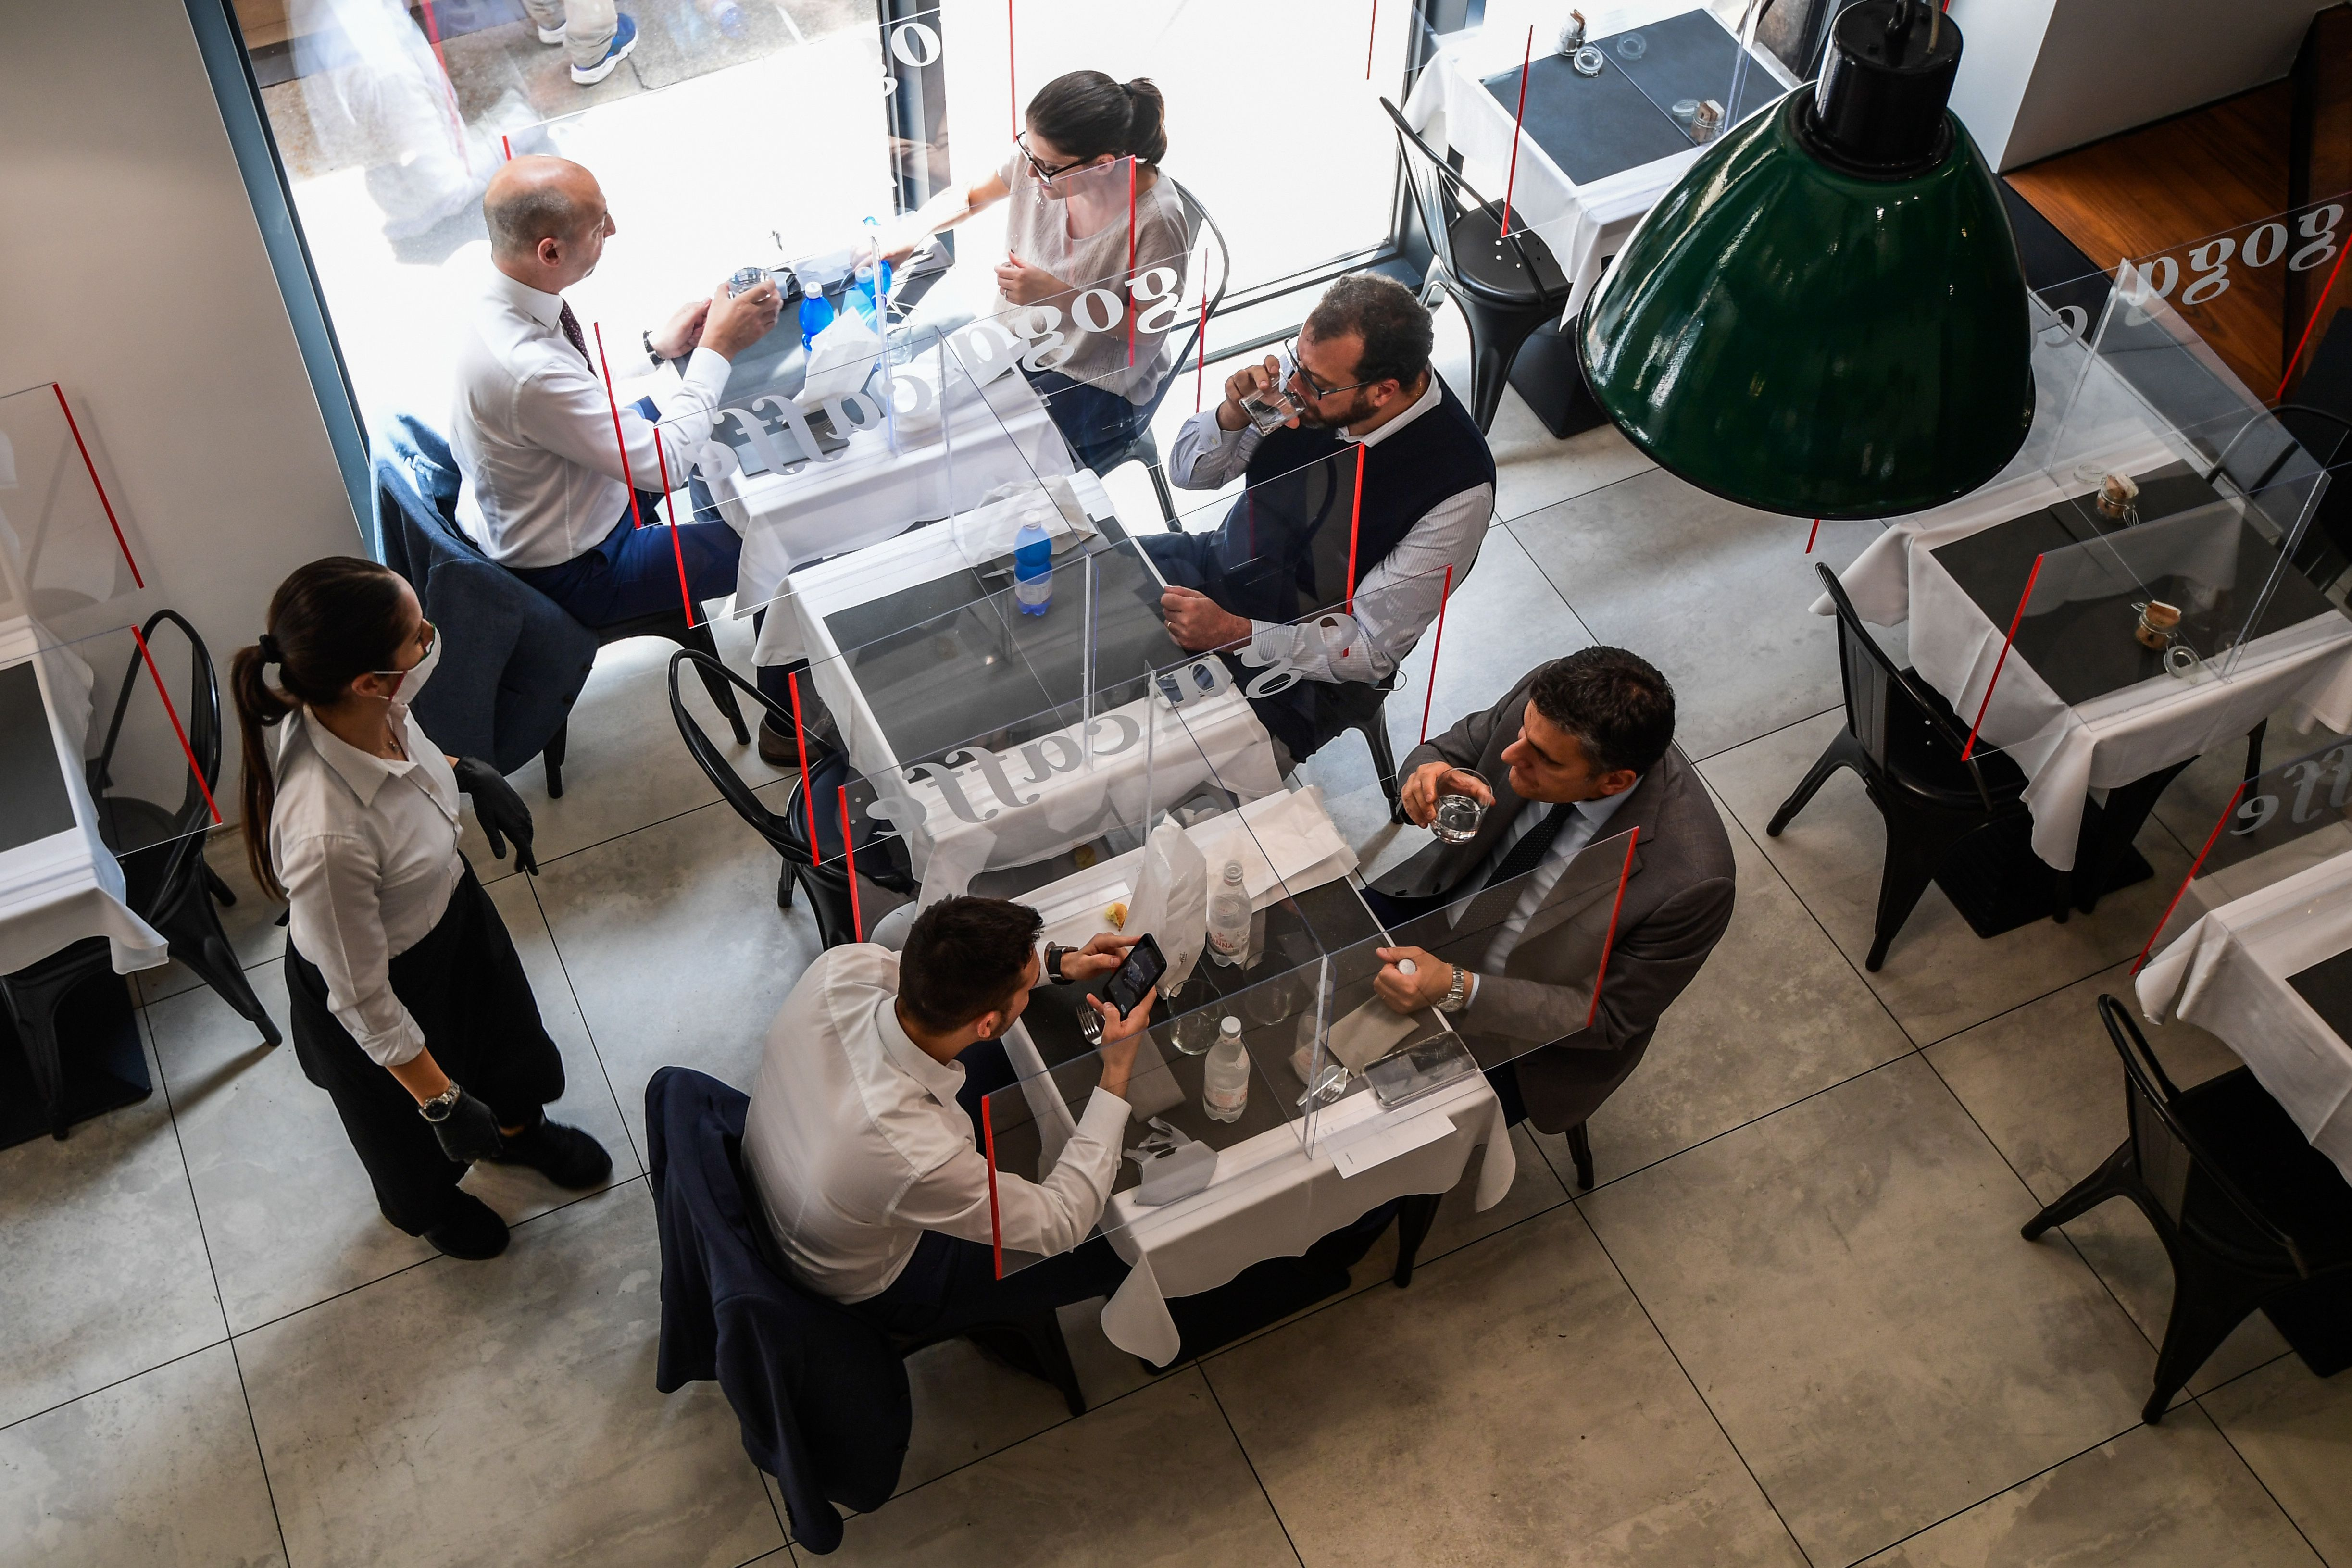 A general view shows people having lunch at tables partitioned with plexiglas at the Goga Cafe on May 18, 2020 in central Milan. (Photo by MIGUEL MEDINA/AFP via Getty Images)